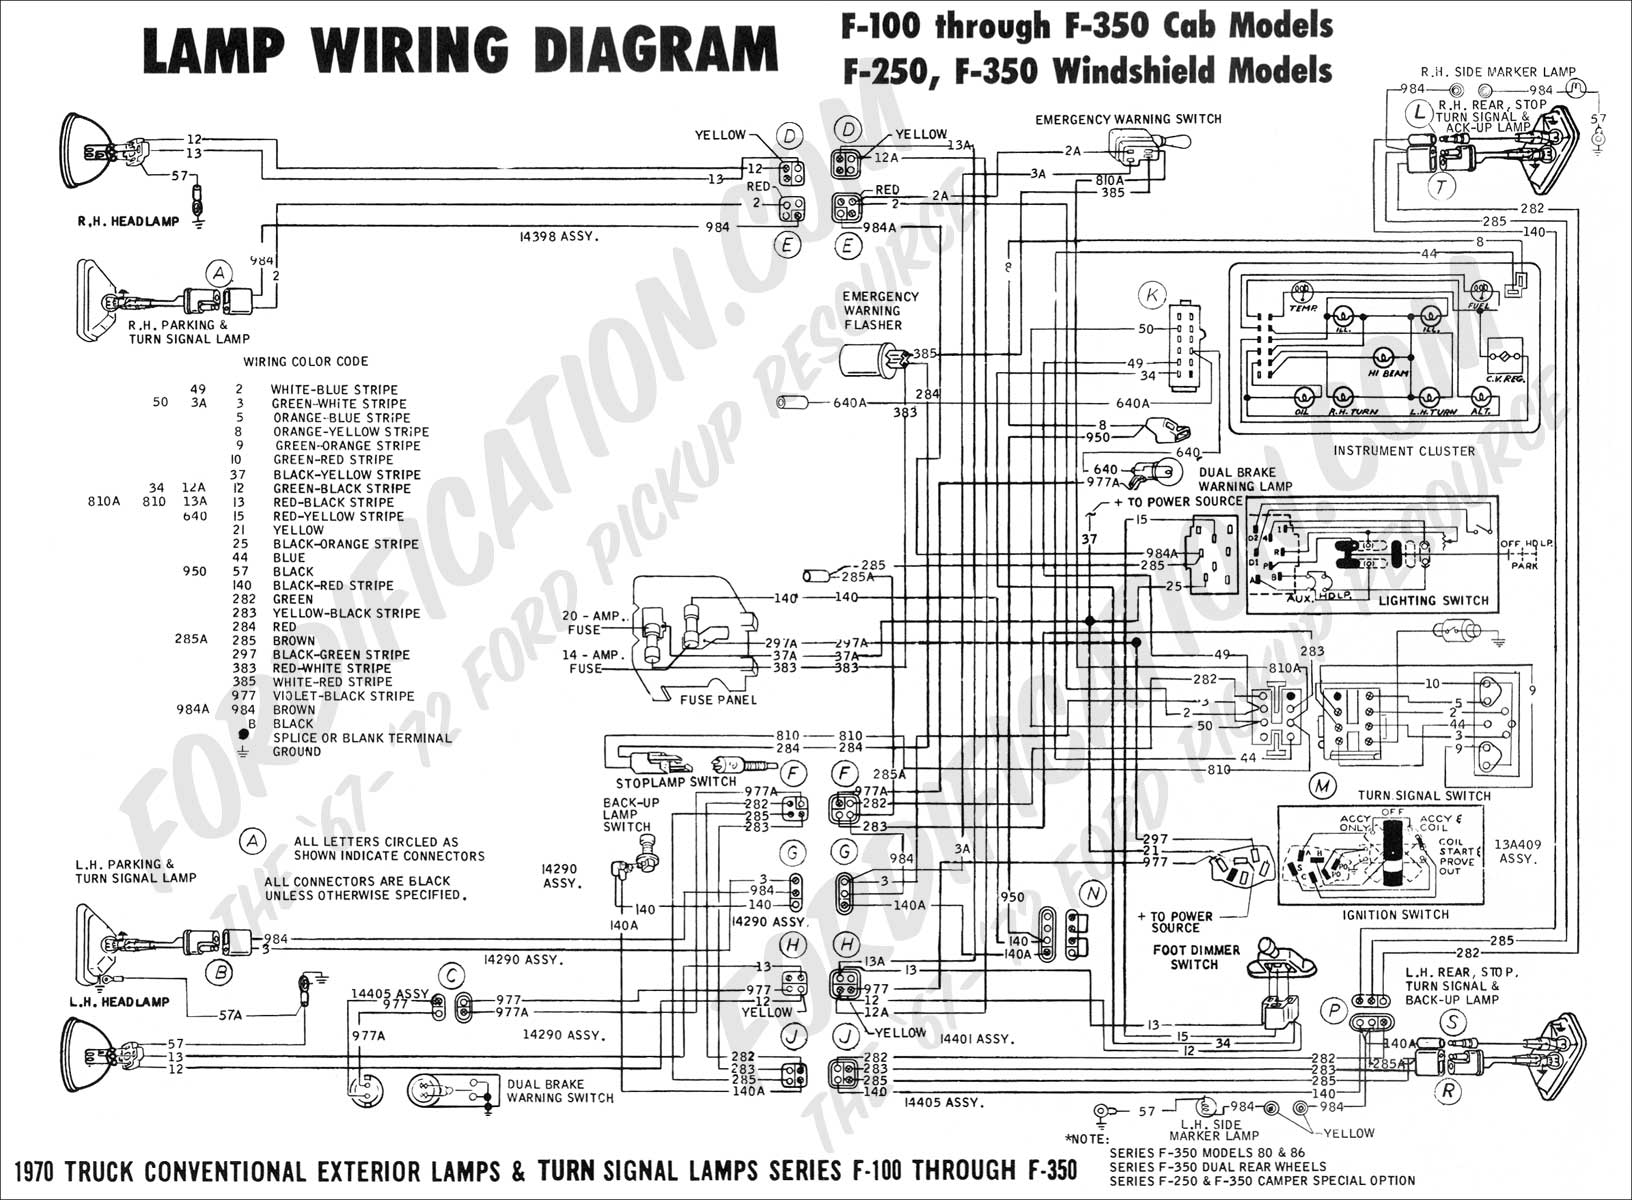 2013 reverse cam wiring diagram with 1291890 Turn Signal Cam Wiring on RepairGuideContent together with 2014 Toyota Tundra Wiring Diagram likewise 2009 Nissan Rogue Wiring Diagram moreover Back Up Camera Harness as well Alternator Wiring Diagram 2001 Audi A6.